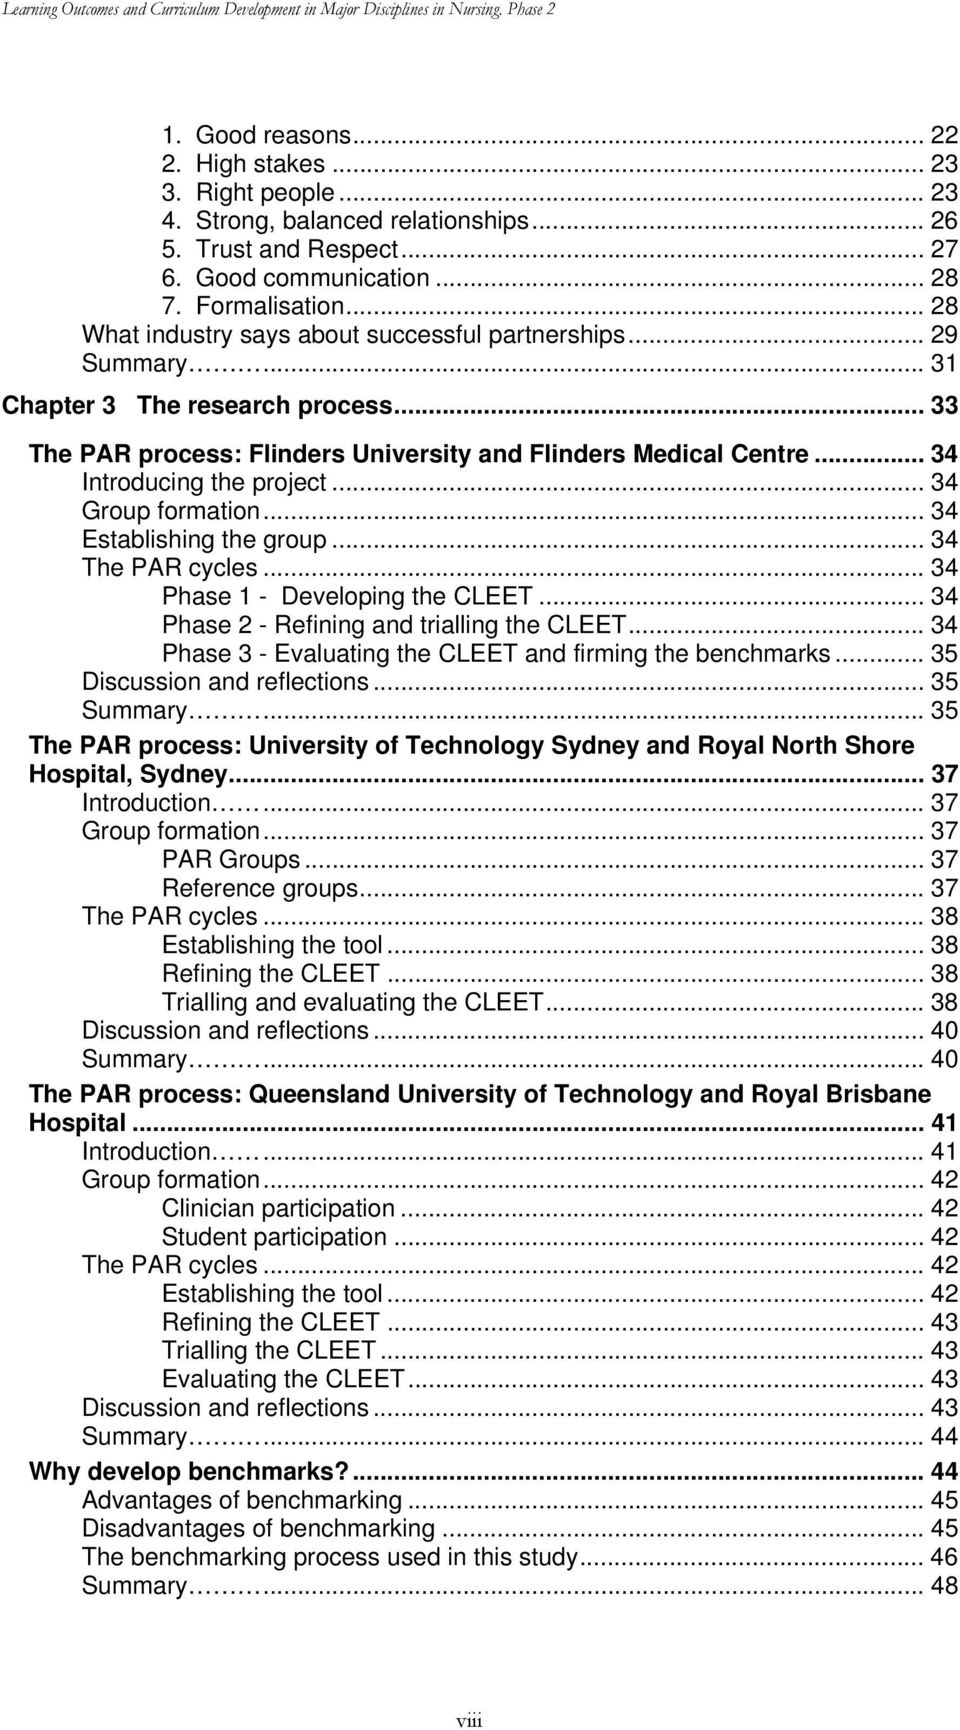 .. 33 The PAR process: Flinders University and Flinders Medical Centre... 34 Introducing the project... 34 Group formation... 34 Establishing the group... 34 The PAR cycles.